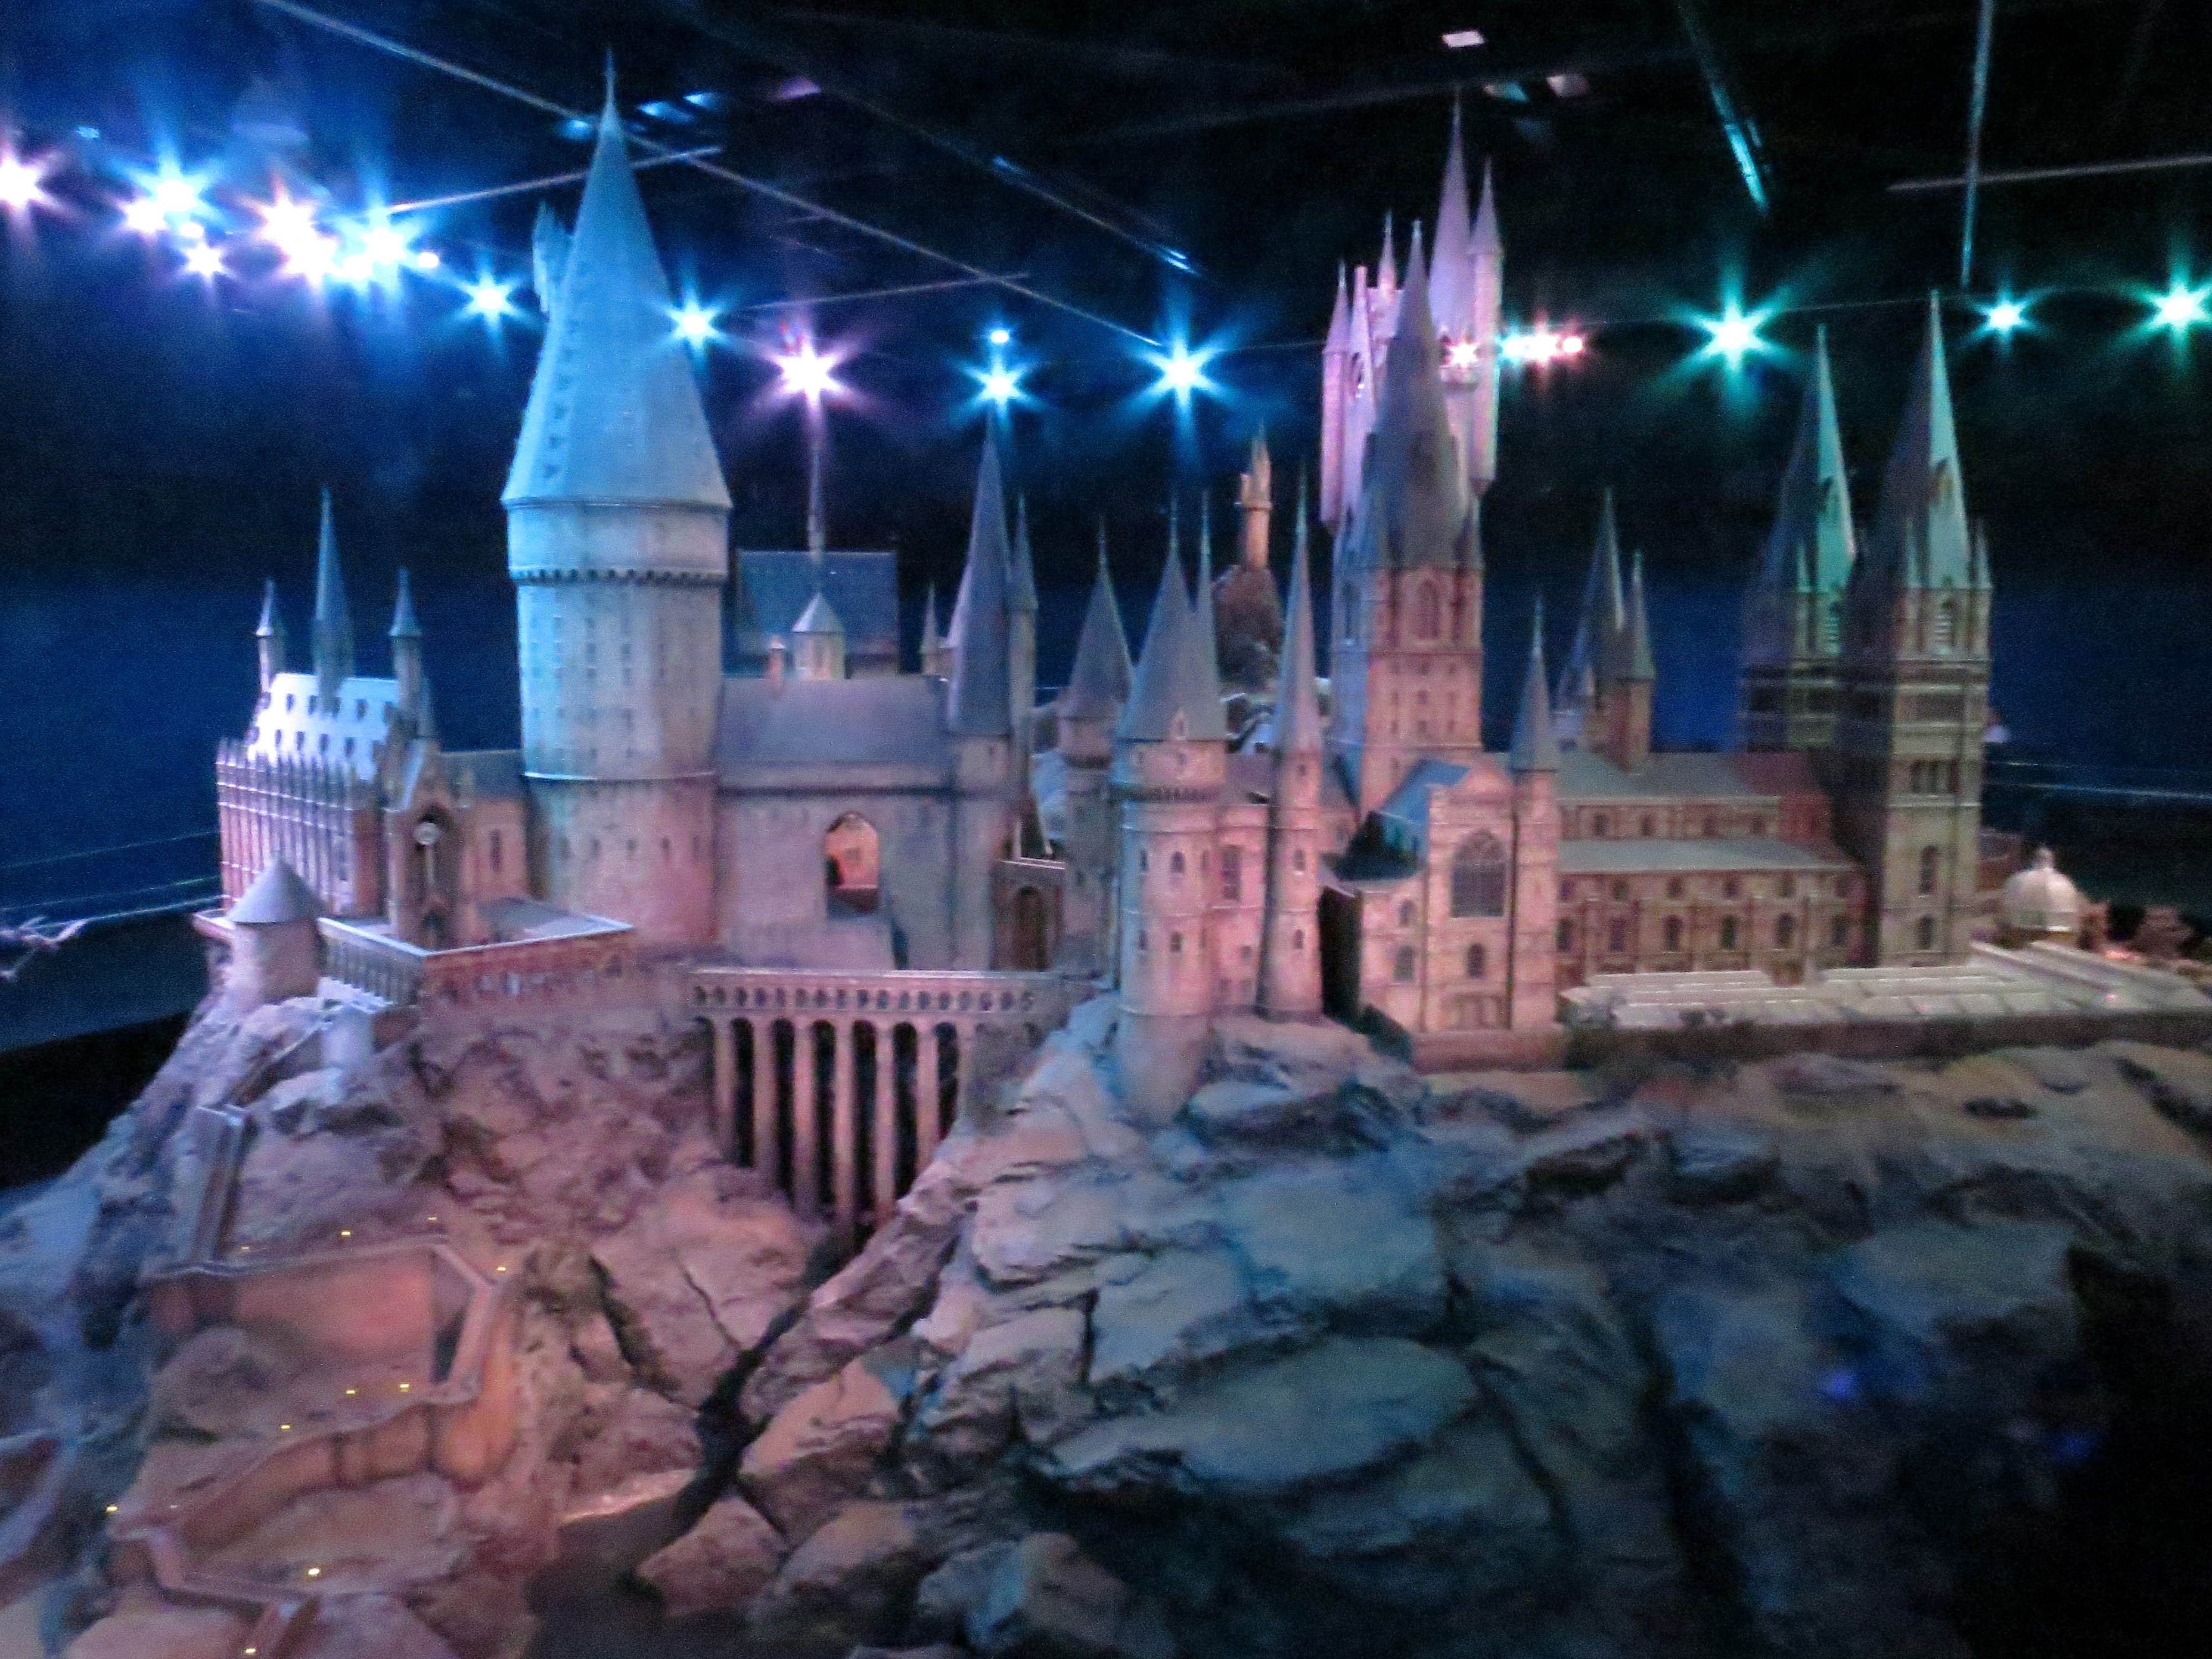 A to scale model of Hogwarts Castle